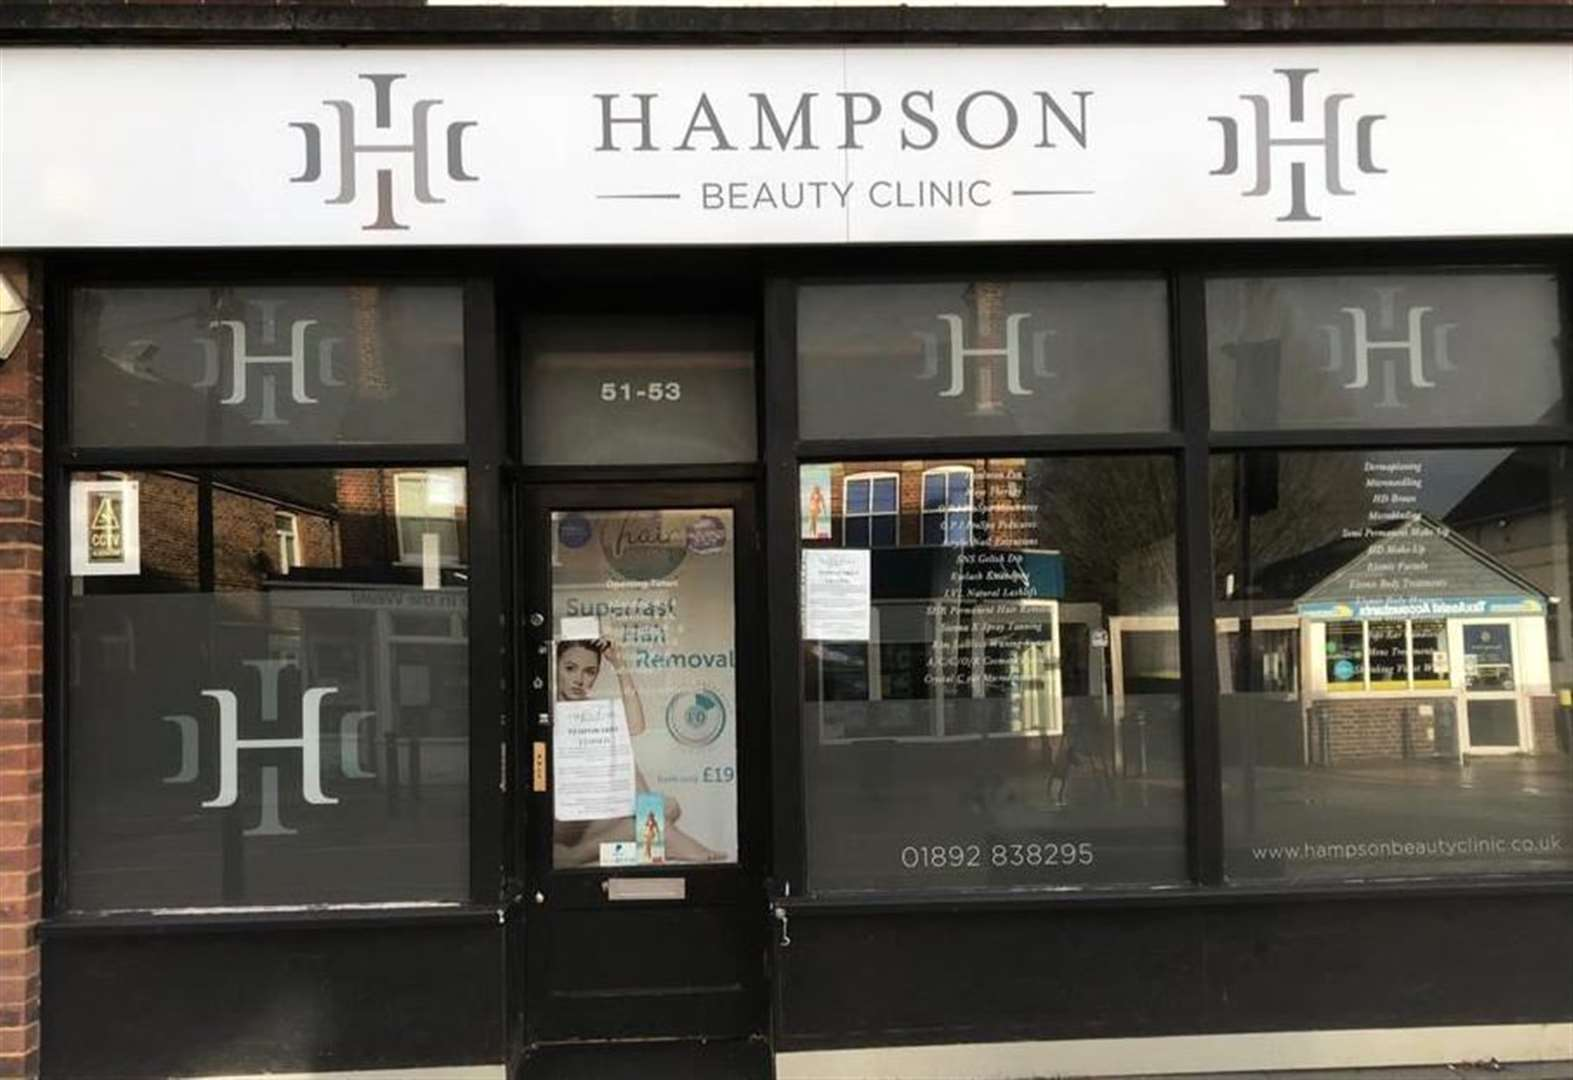 Beauty salons are ready to welcome you back